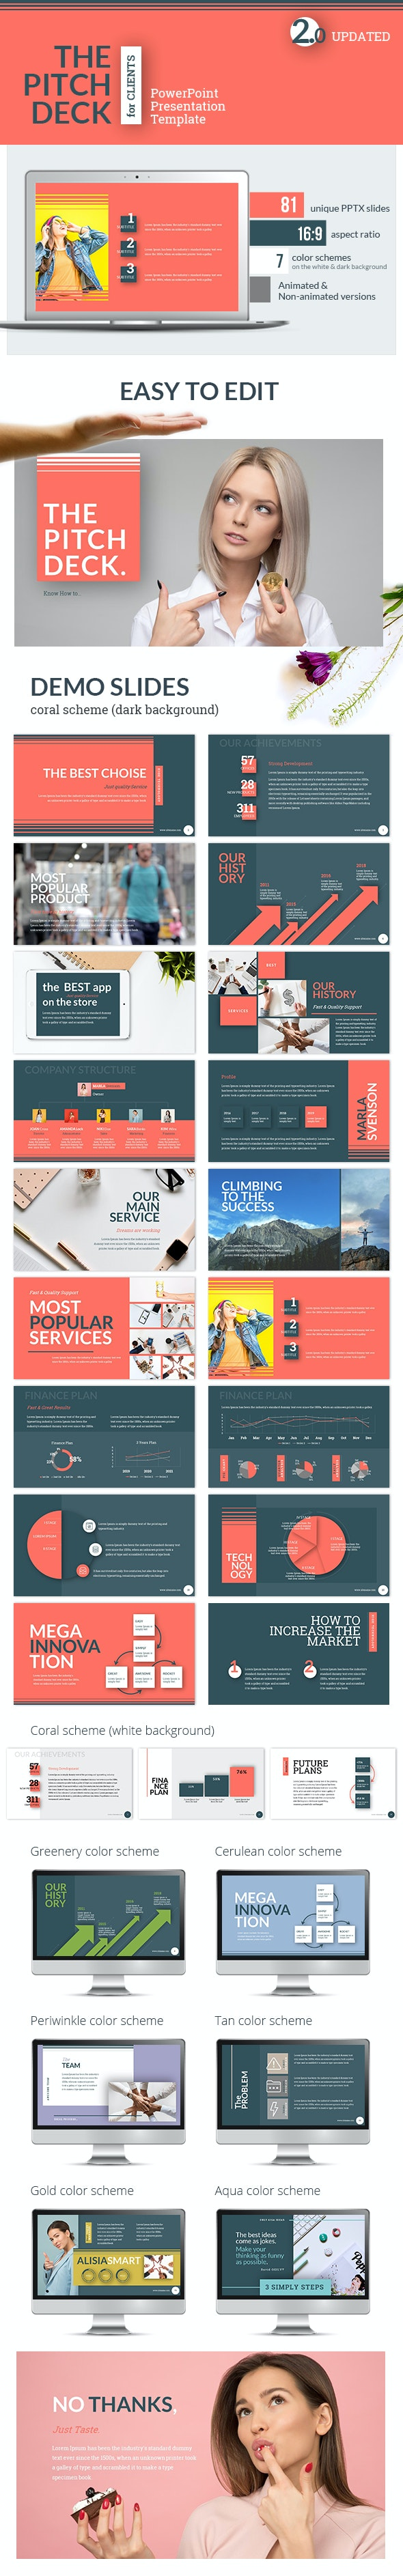 Pitch Deck for Clients PowerPoint Presentation Template - Pitch Deck PowerPoint Templates